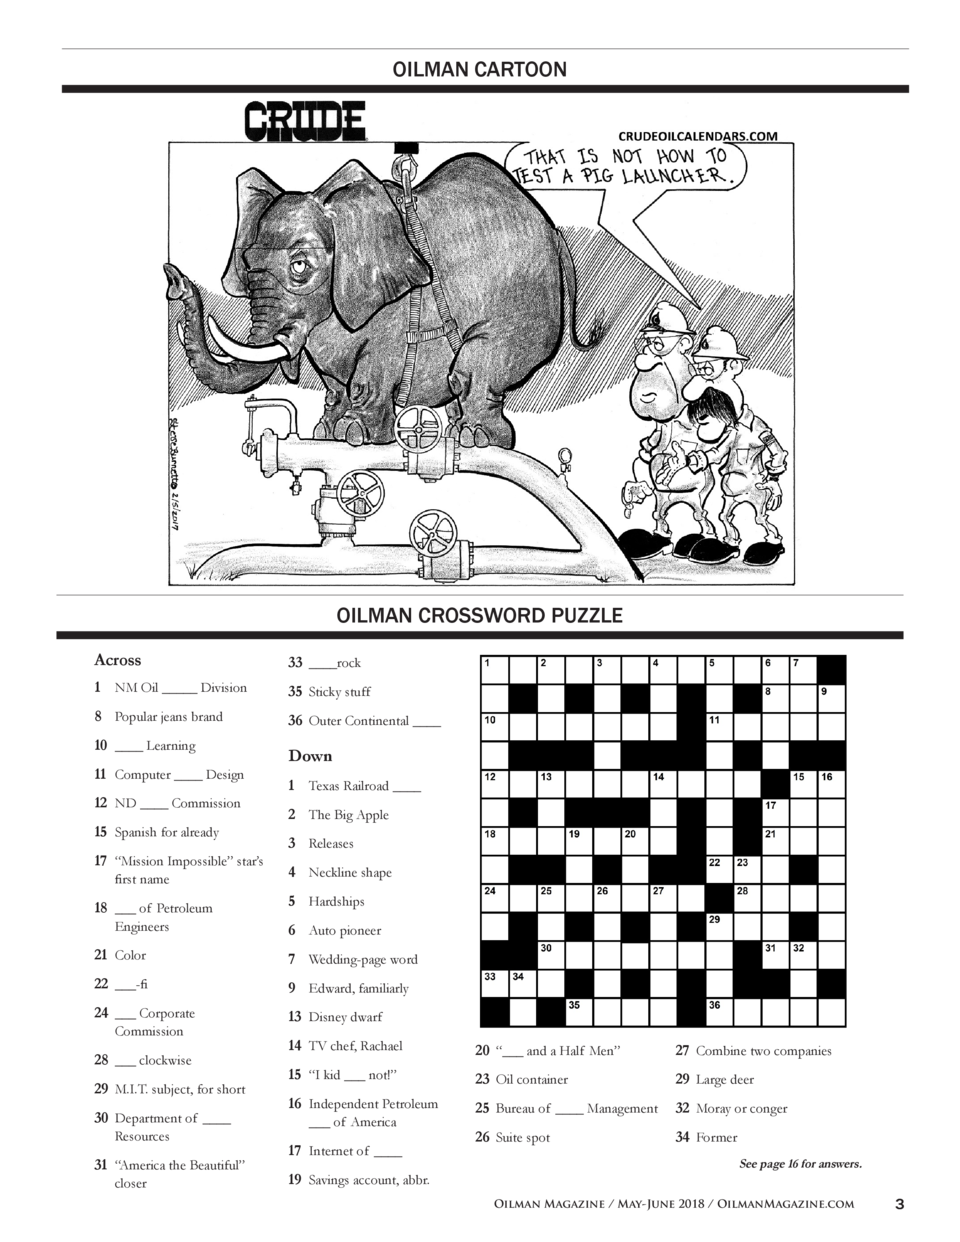 1111d49268c OILMAN CARTOON OILMAN CROSSWORD PUZZLE Across 33     rock 1 NM Oil        Division 35 Sticky stuff